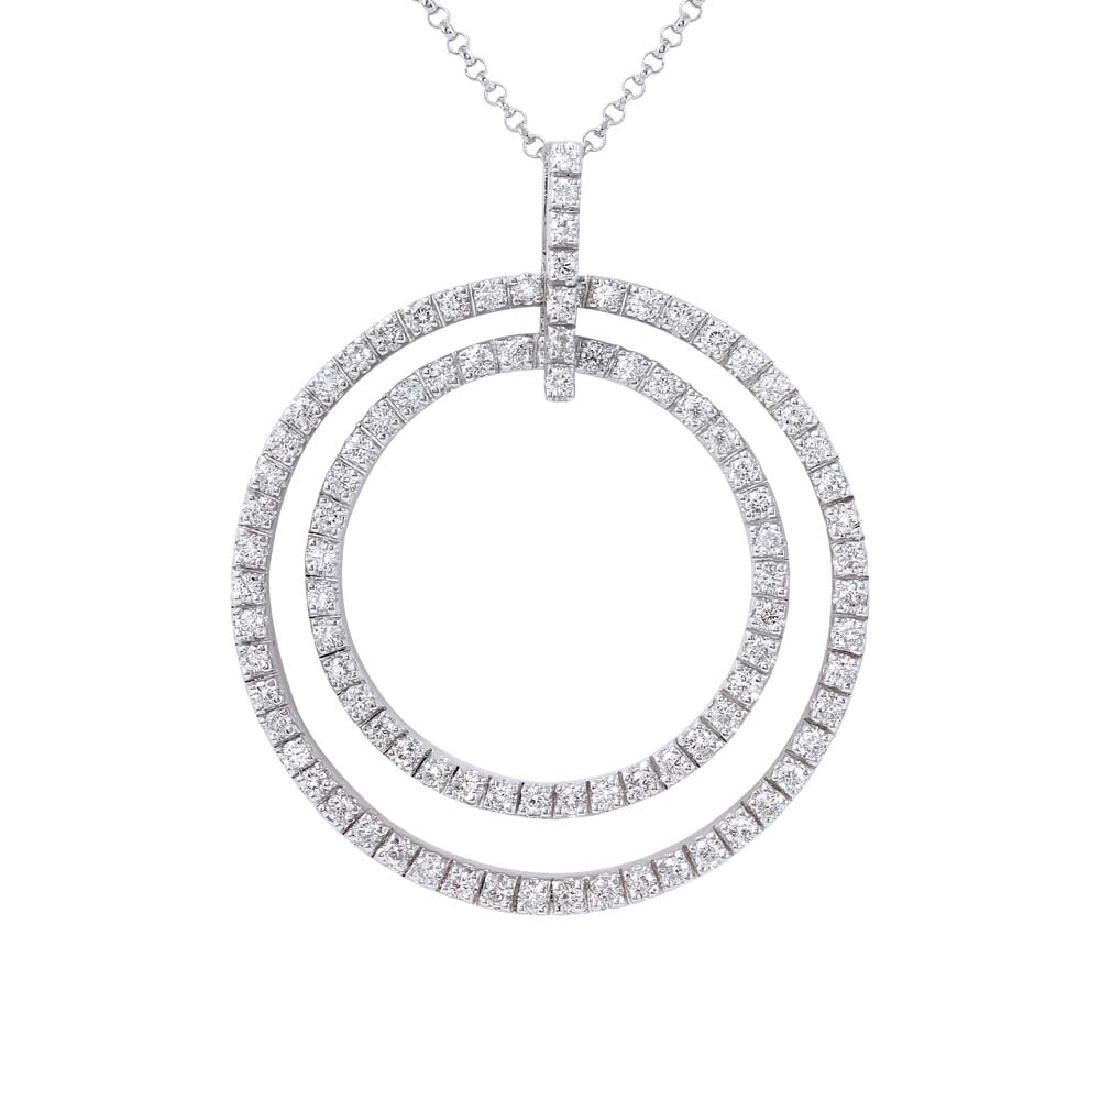 Genuine 1.16 TCW 18K White Gold Ladies Necklace